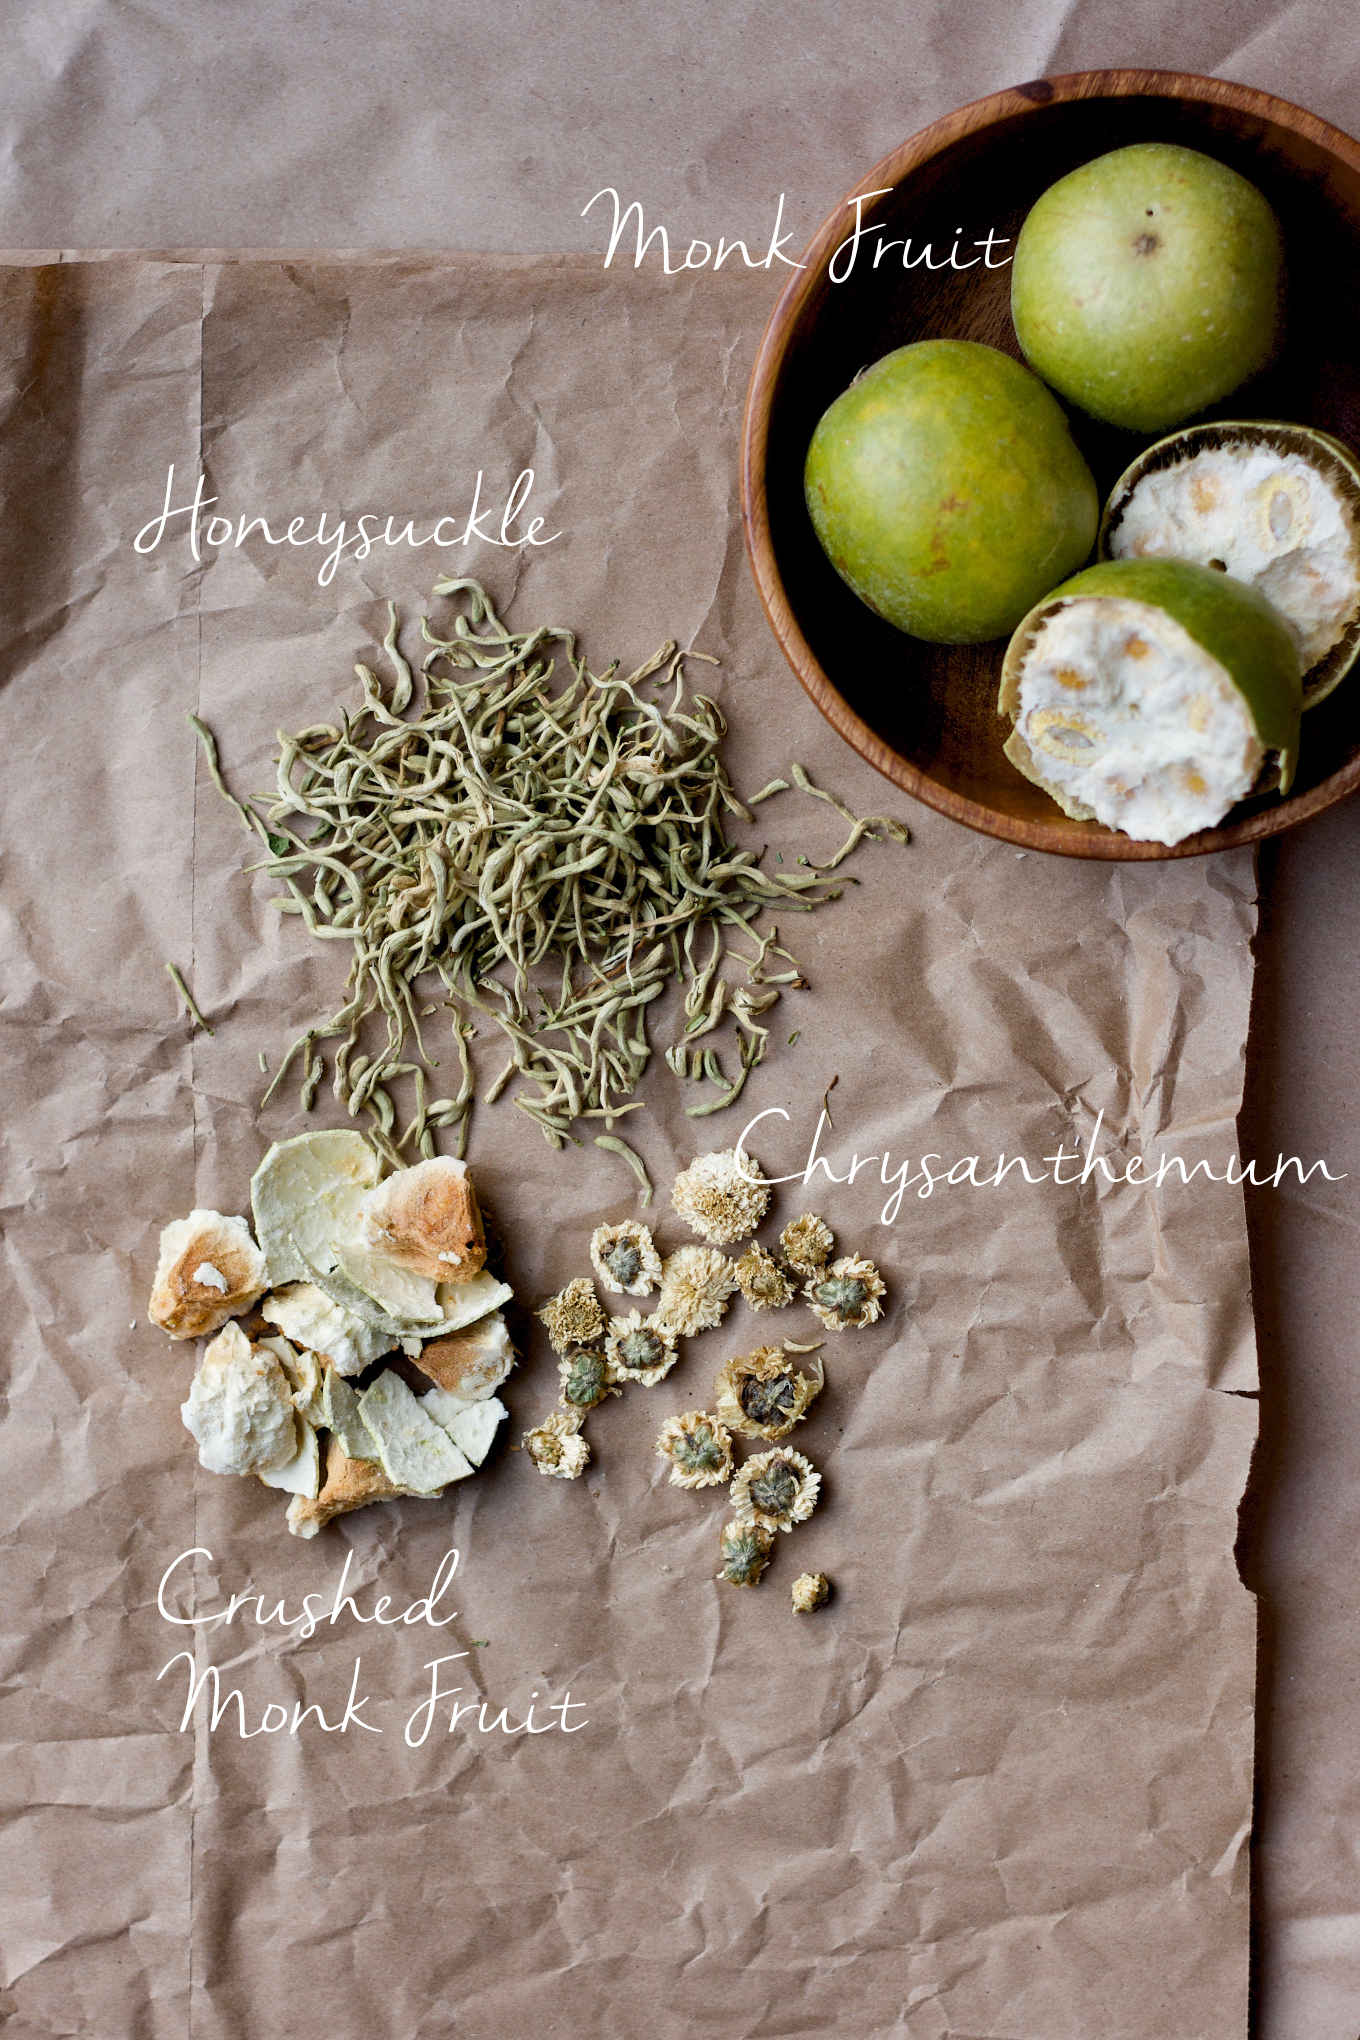 honeysuckle, monk fruit and chrysanthemum tea ingredients